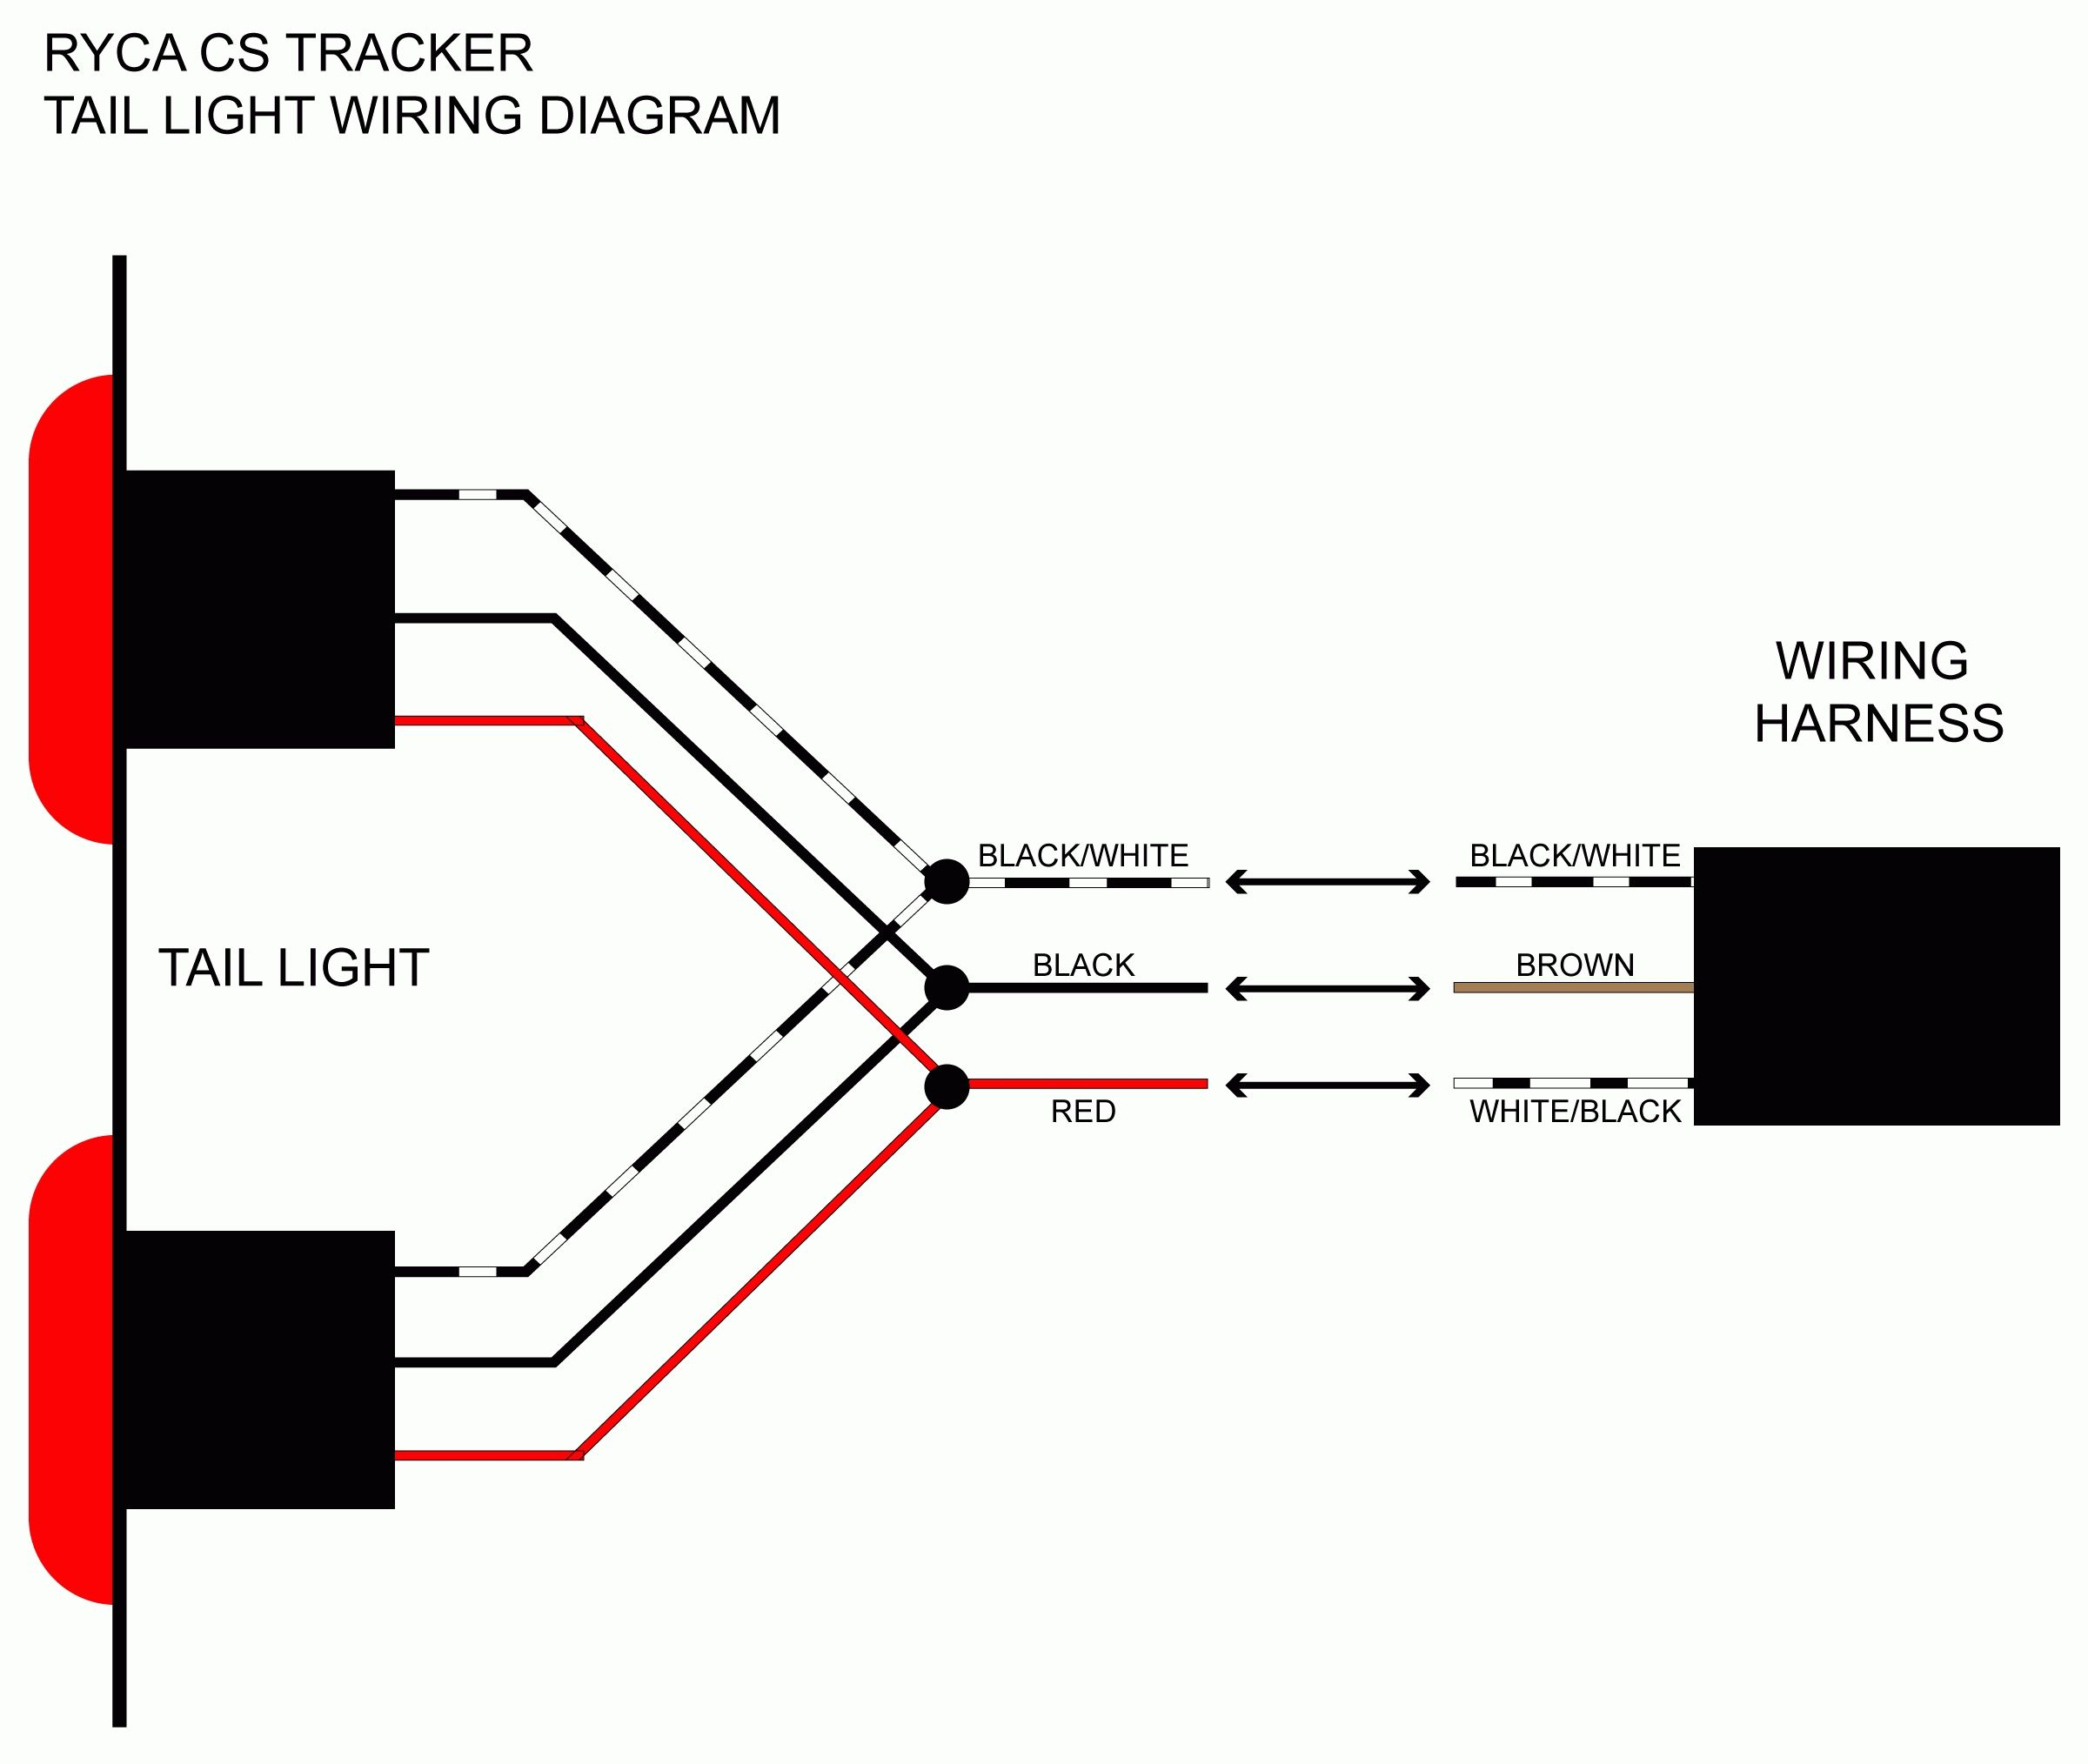 led tail lights wiring diagram wiring diagramled tail lights wiring diagram